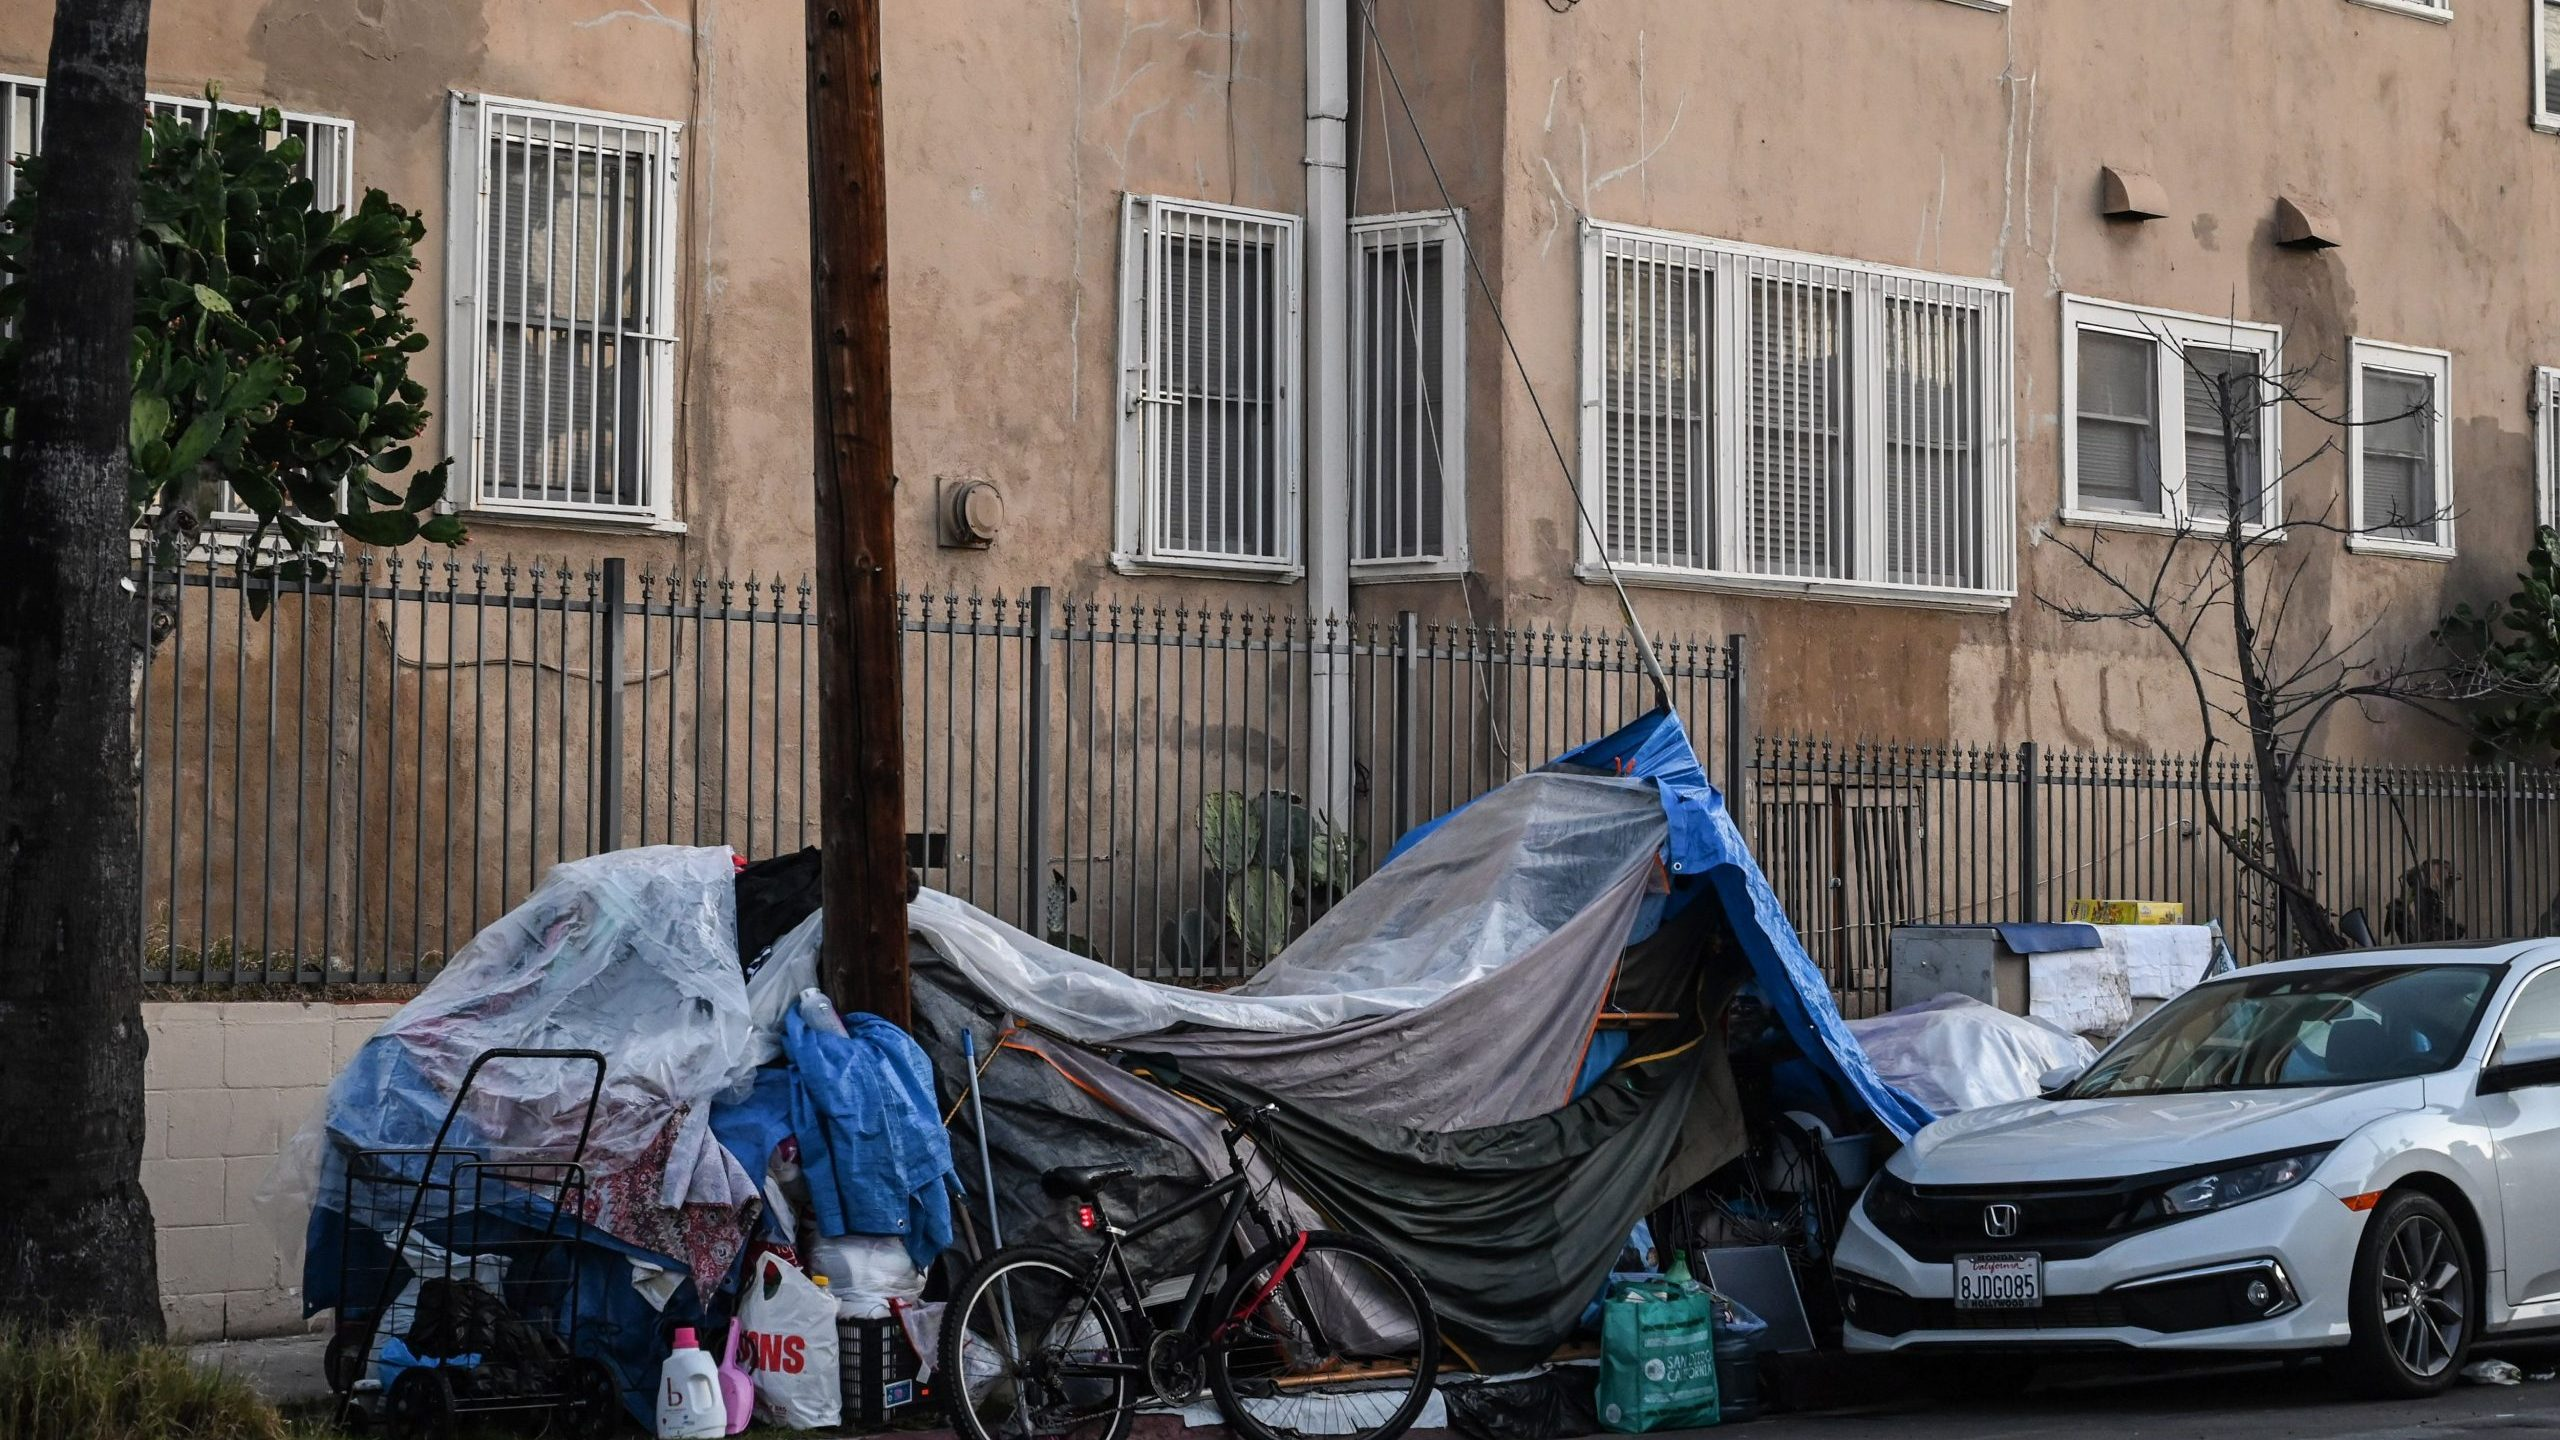 Tents sheltering homeless people line a residential street in Los Angeles on Dec. 9, 2019. (Credit: Robyn Beck/AFP via Getty Images)